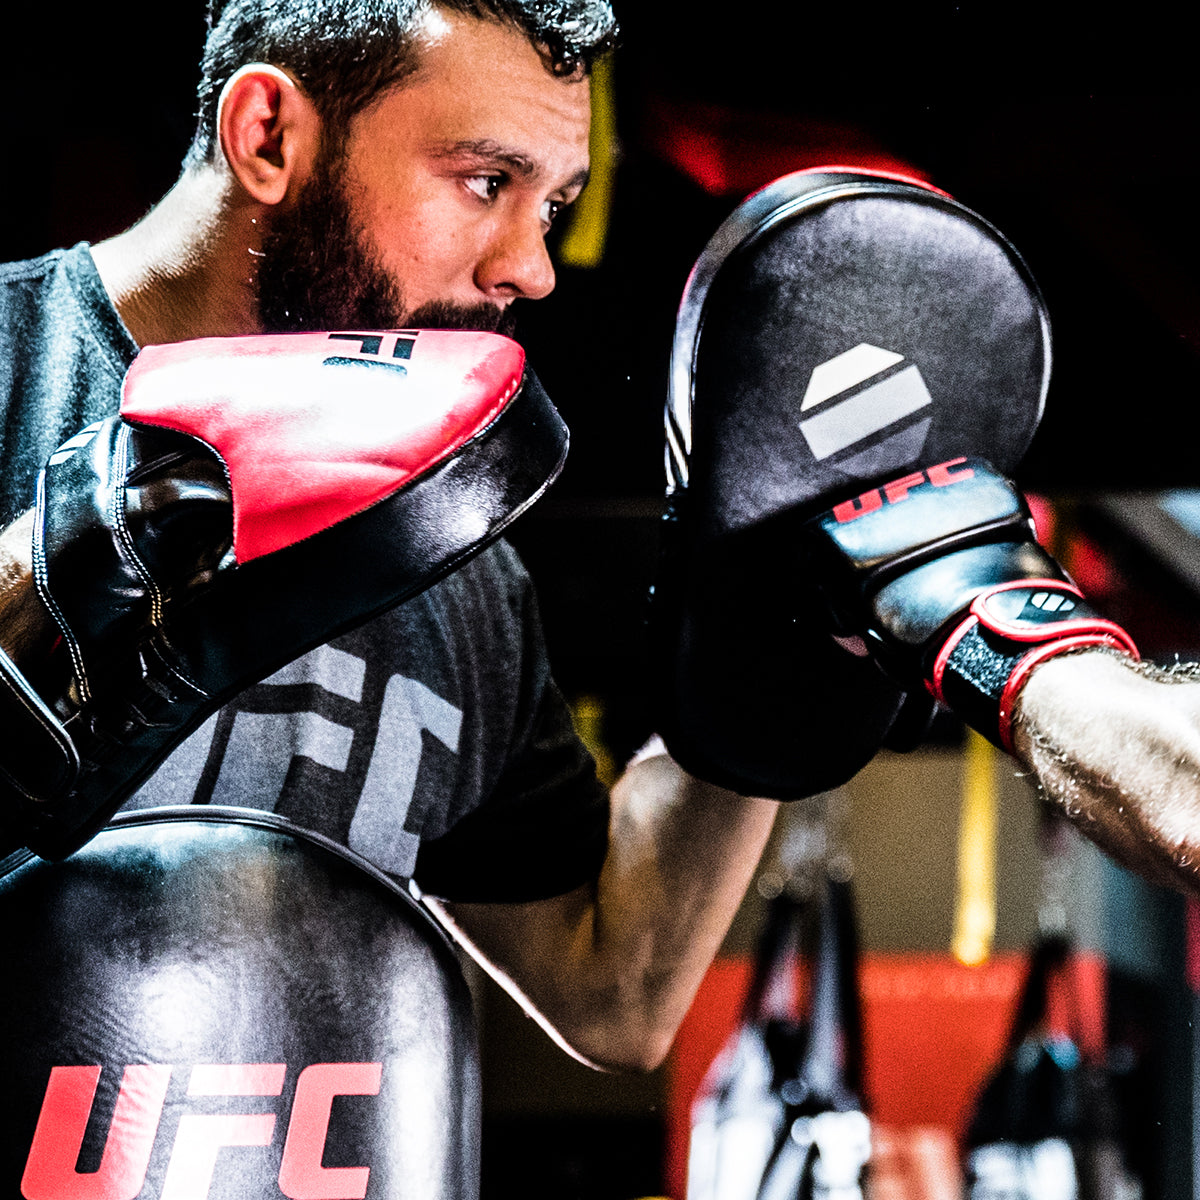 UFC Long Curved Focus Mitt being punched by athlete in training